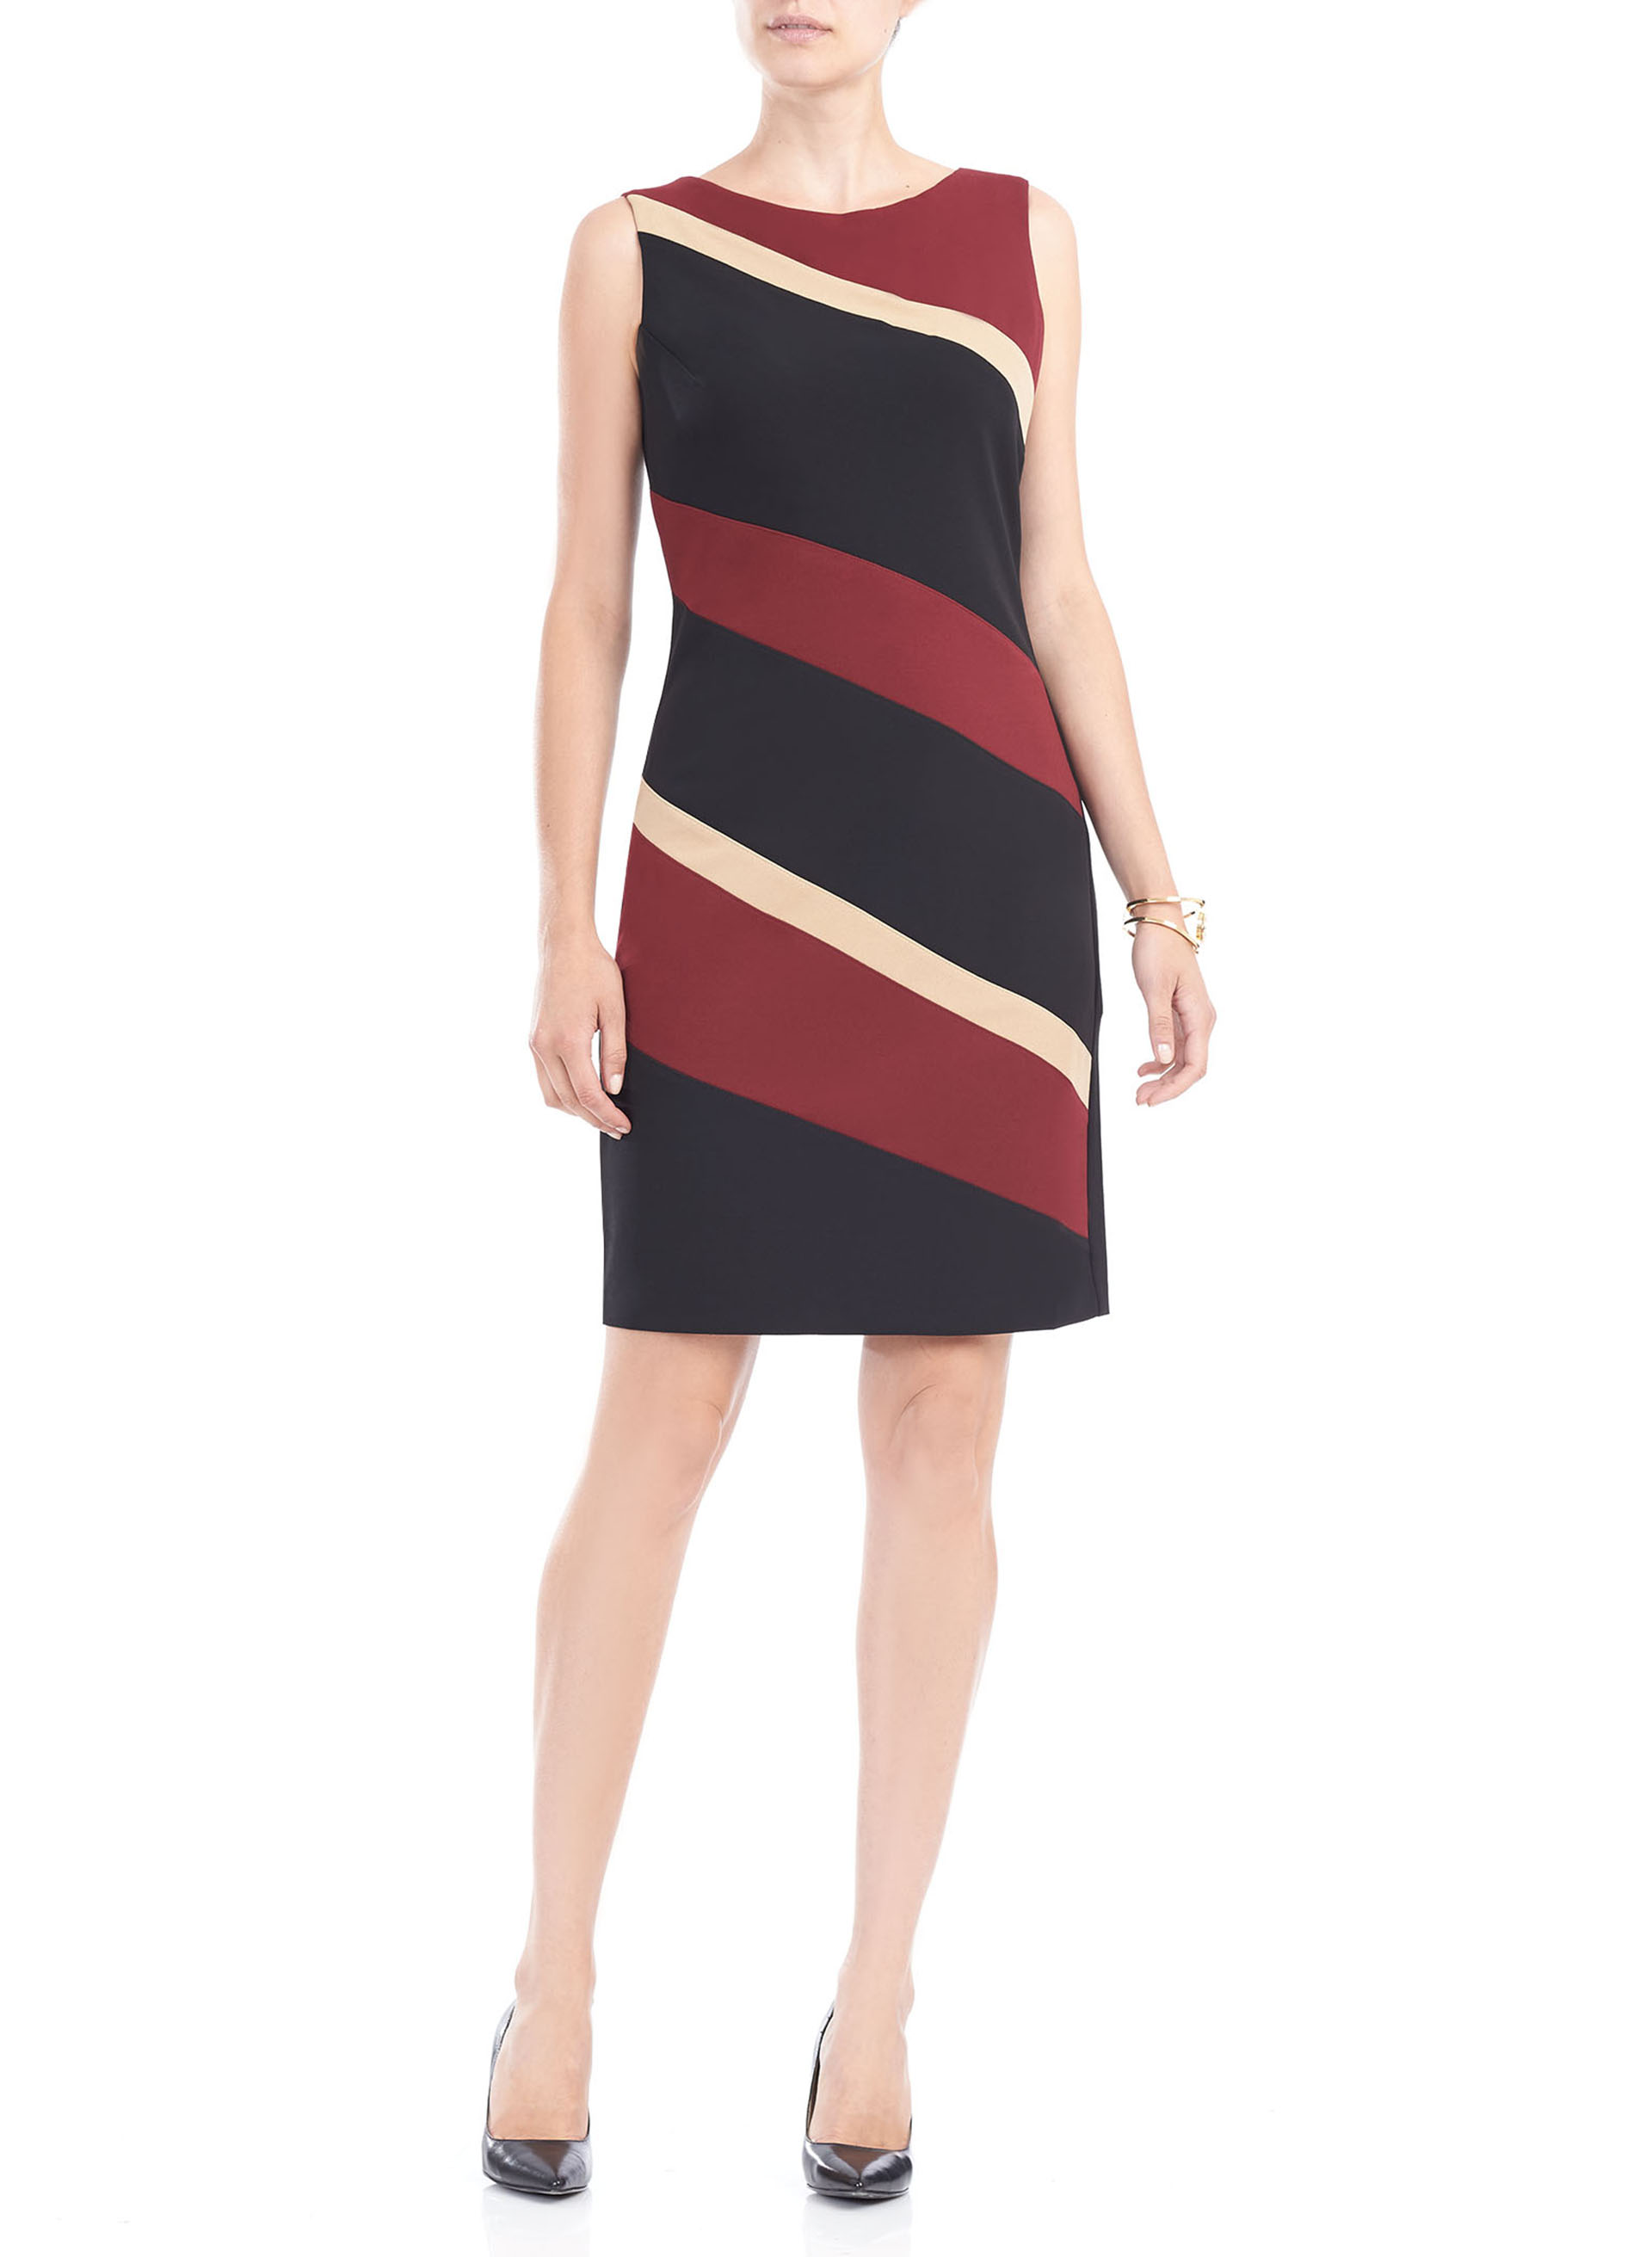 Sleeveless Colour Block Crêpe Dress, Multi, hi-res